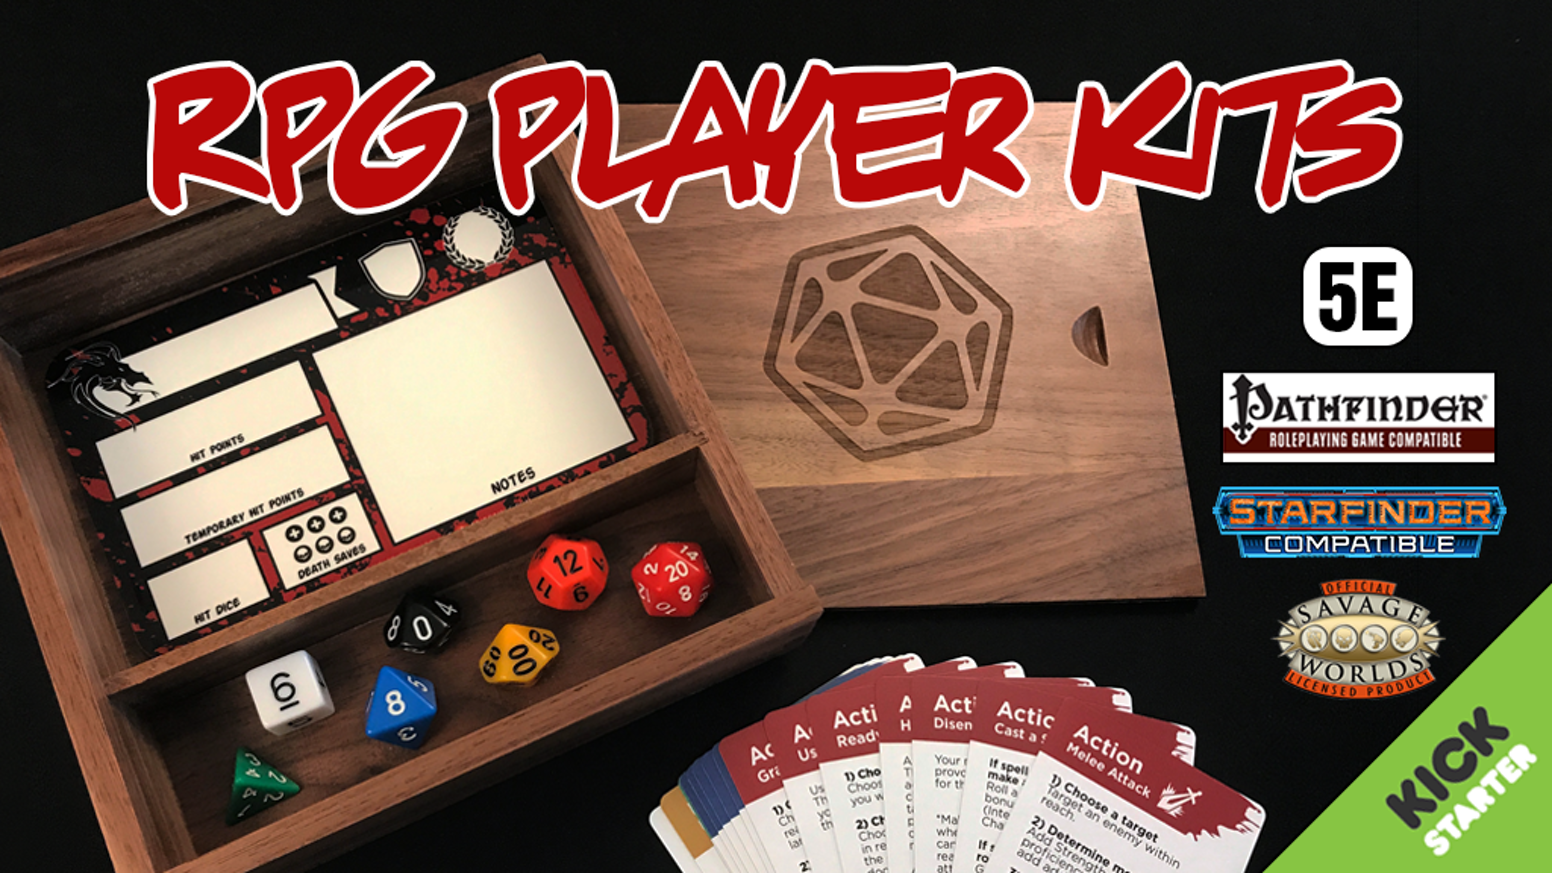 Enhance and streamline your tabletop role-playing experience!  Compatible with DnD 5E and many other role-playing game systems. Miss out on the kickstarter?  Get your RPG Player Kit from our online store at http://critgames.com